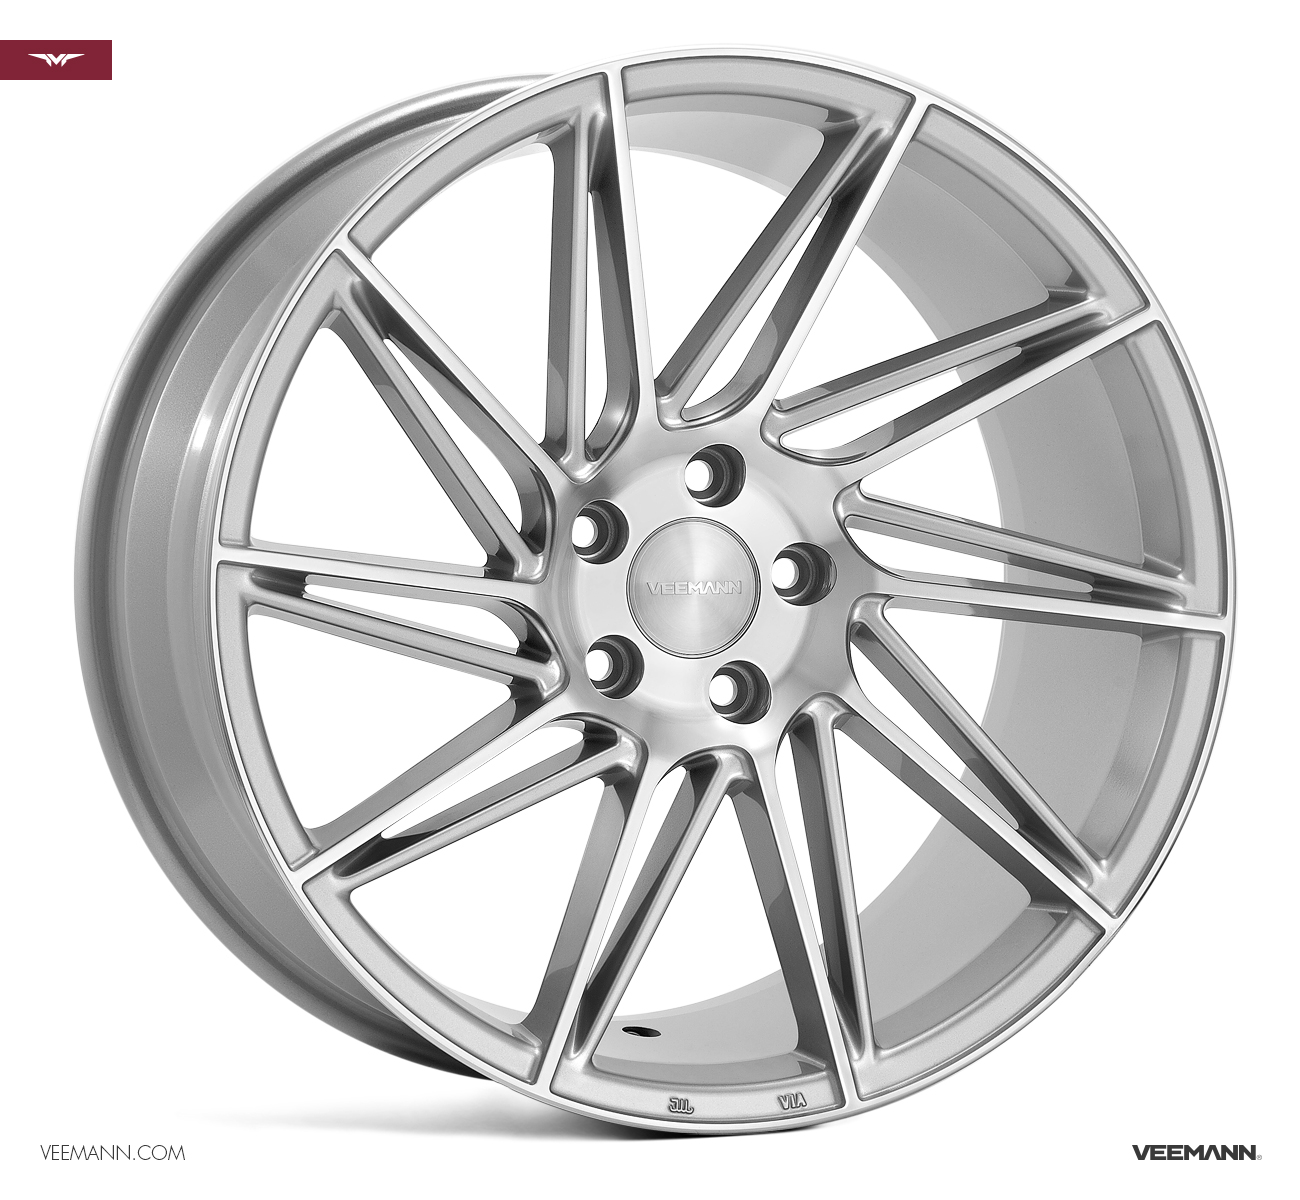 "NEW 19"" VEEMANN V-FS26 DIRECTIONAL ALLOY WHEELS IN SILVER POL WITH WIDER 9.5"" REARS"